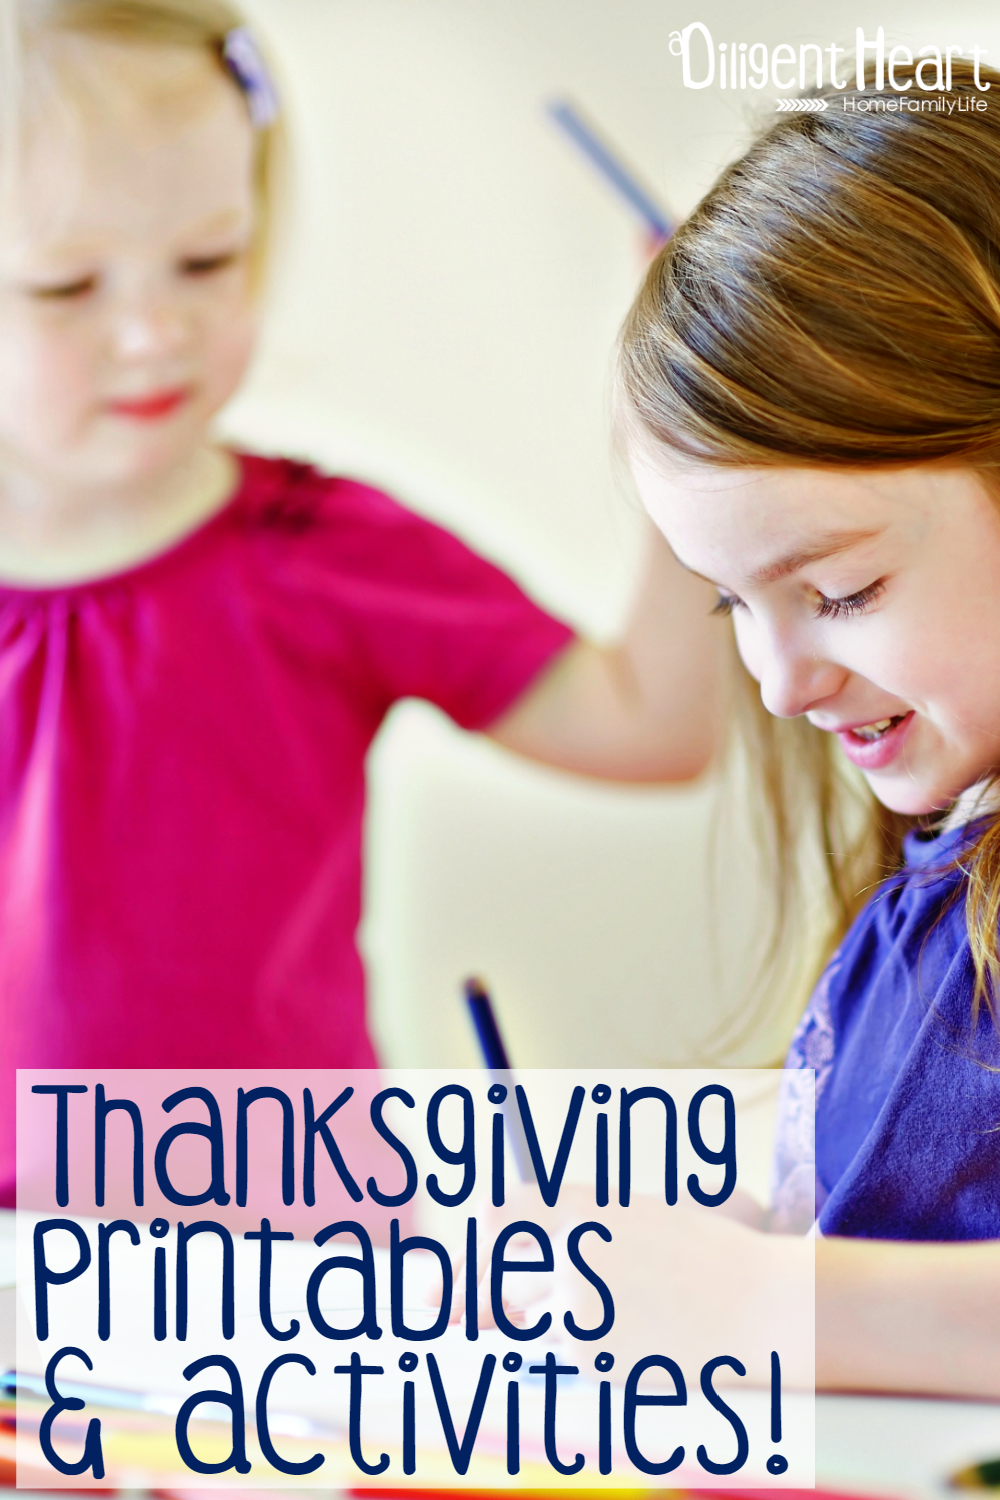 Thanksgiving Printables and Activities adiligentheart.com